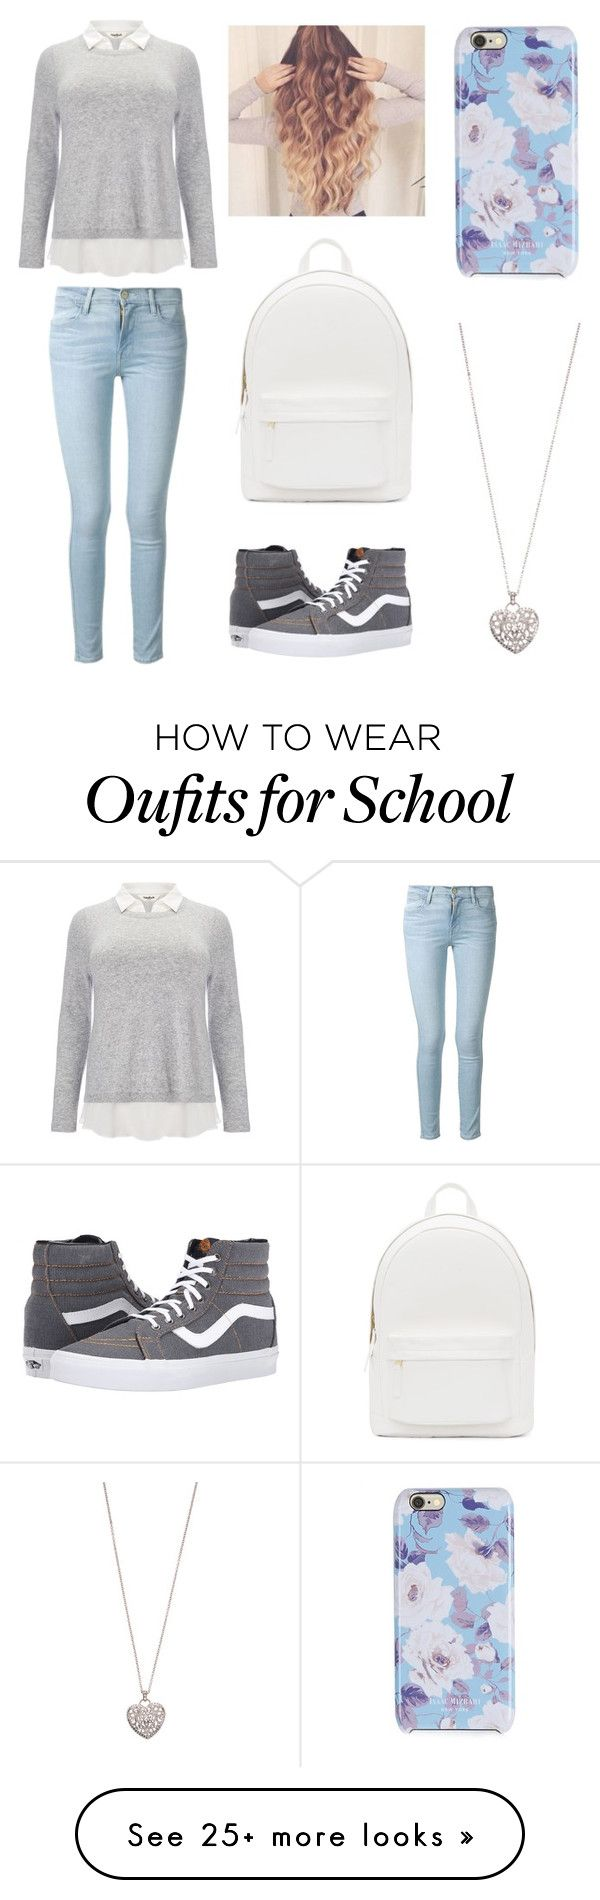 """simple school outfit"" by rach-bonjour on Polyvore featuring Studio 8, Frame Denim, Vans, PB 0110, Isaac Mizrahi and Accessorize"